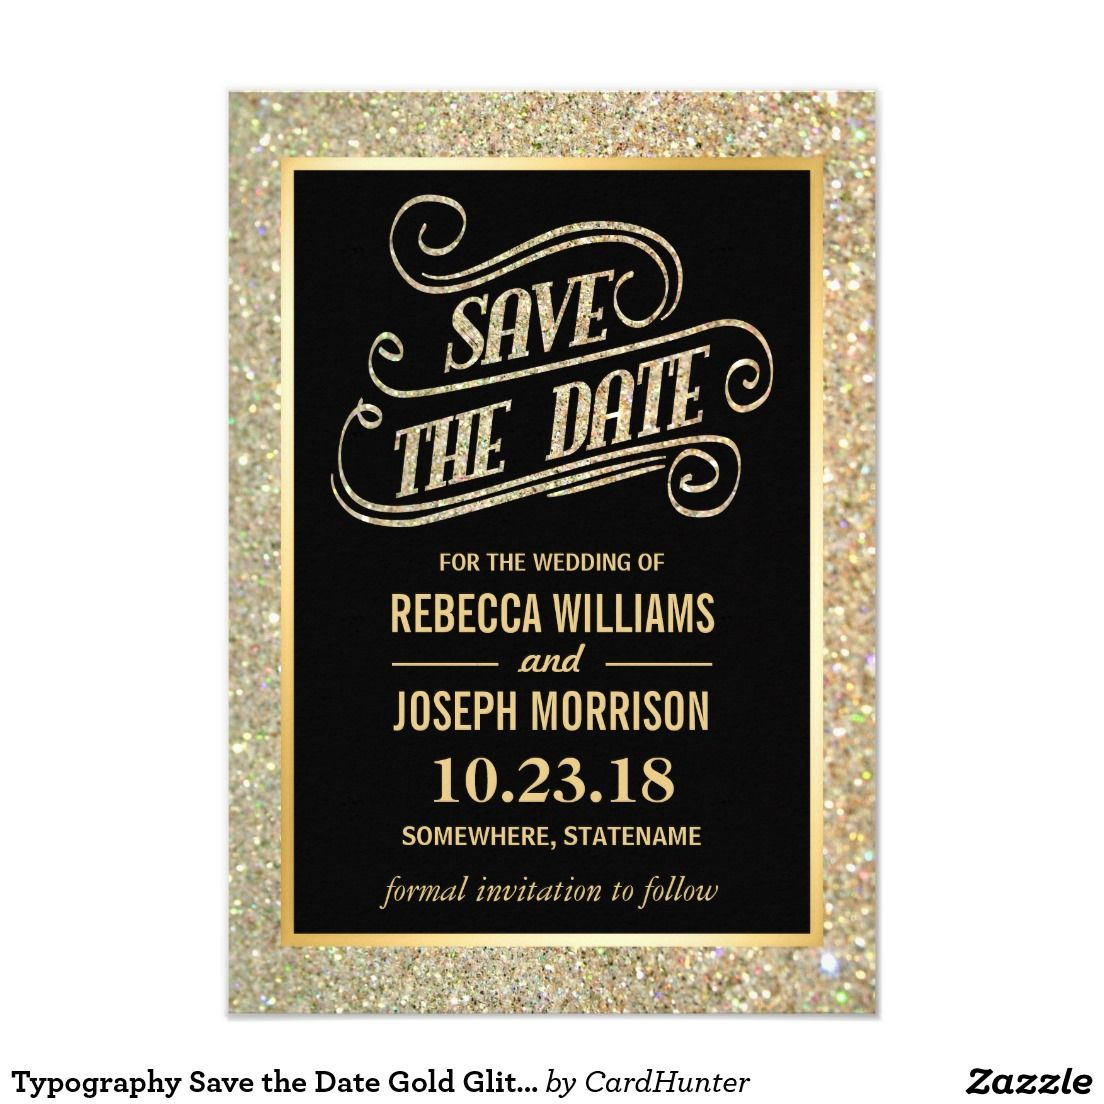 Typography Save the Date Gold Glitter Sparkles Card Typography Save the Date Gold Glitter Sparkles Template for you. (1) All text style, colors, sizes can be modified to fit your needs. (2) If you need any customization or matching stationery, please feel free to contact me.